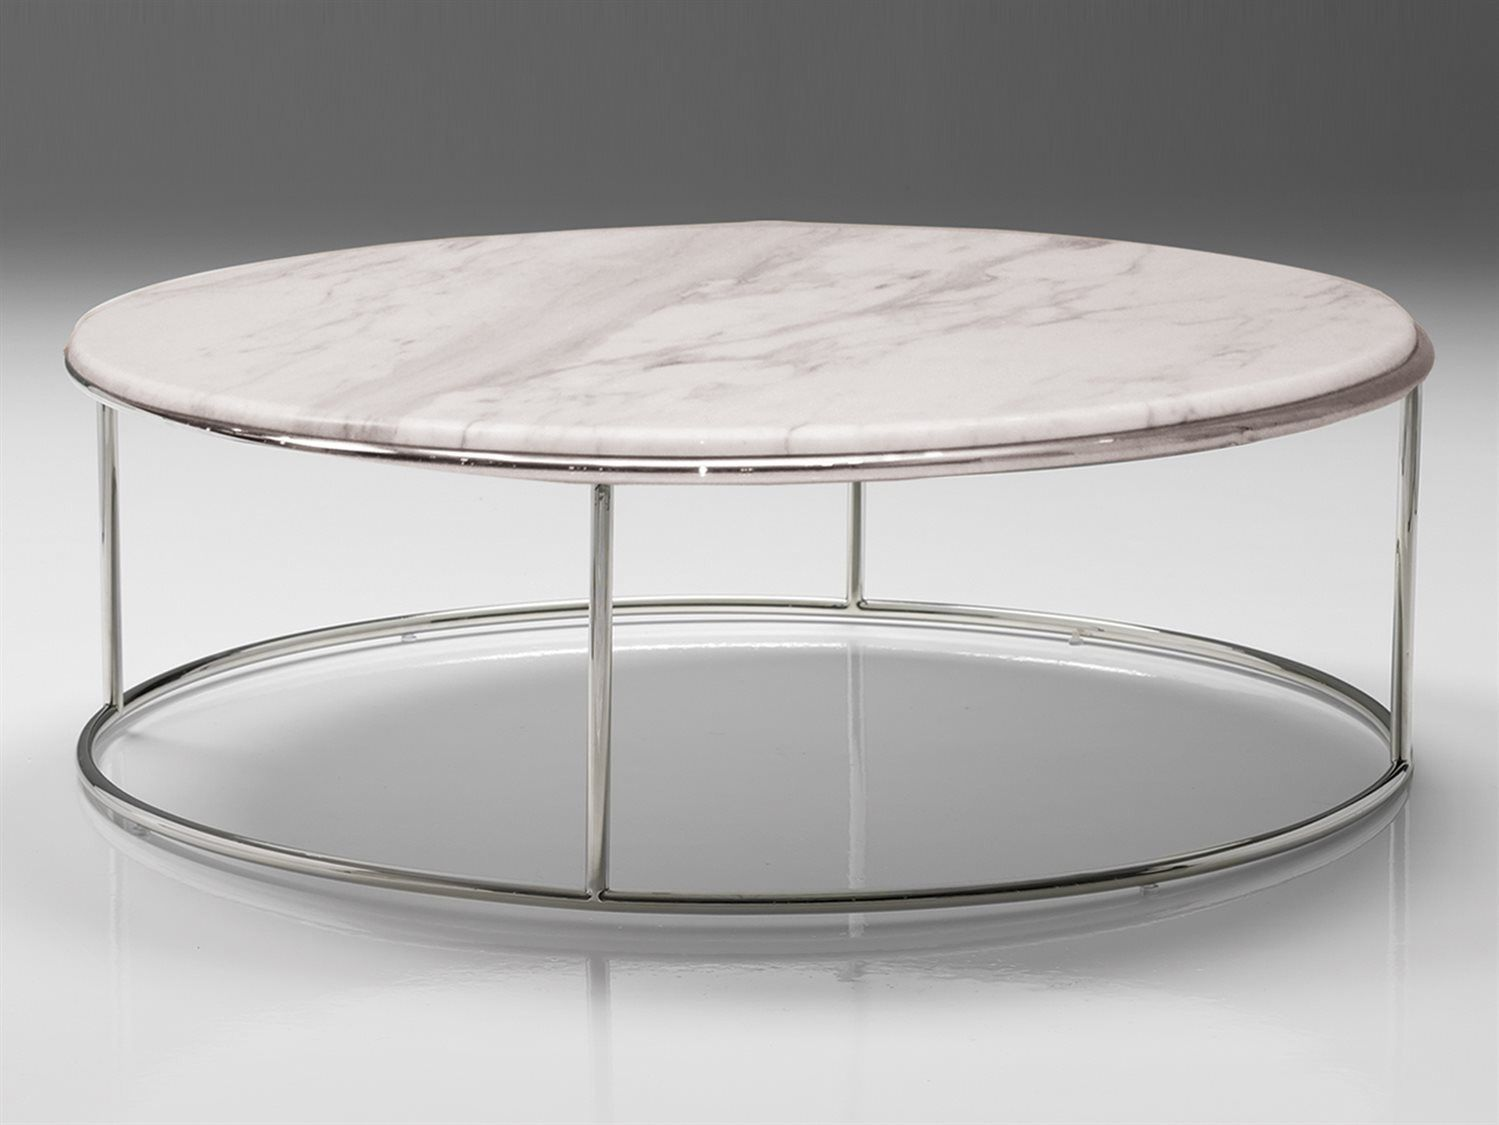 100 36 Inch Round Marble Table Top Cool Modern Furniture Check More At Http Livelylighting